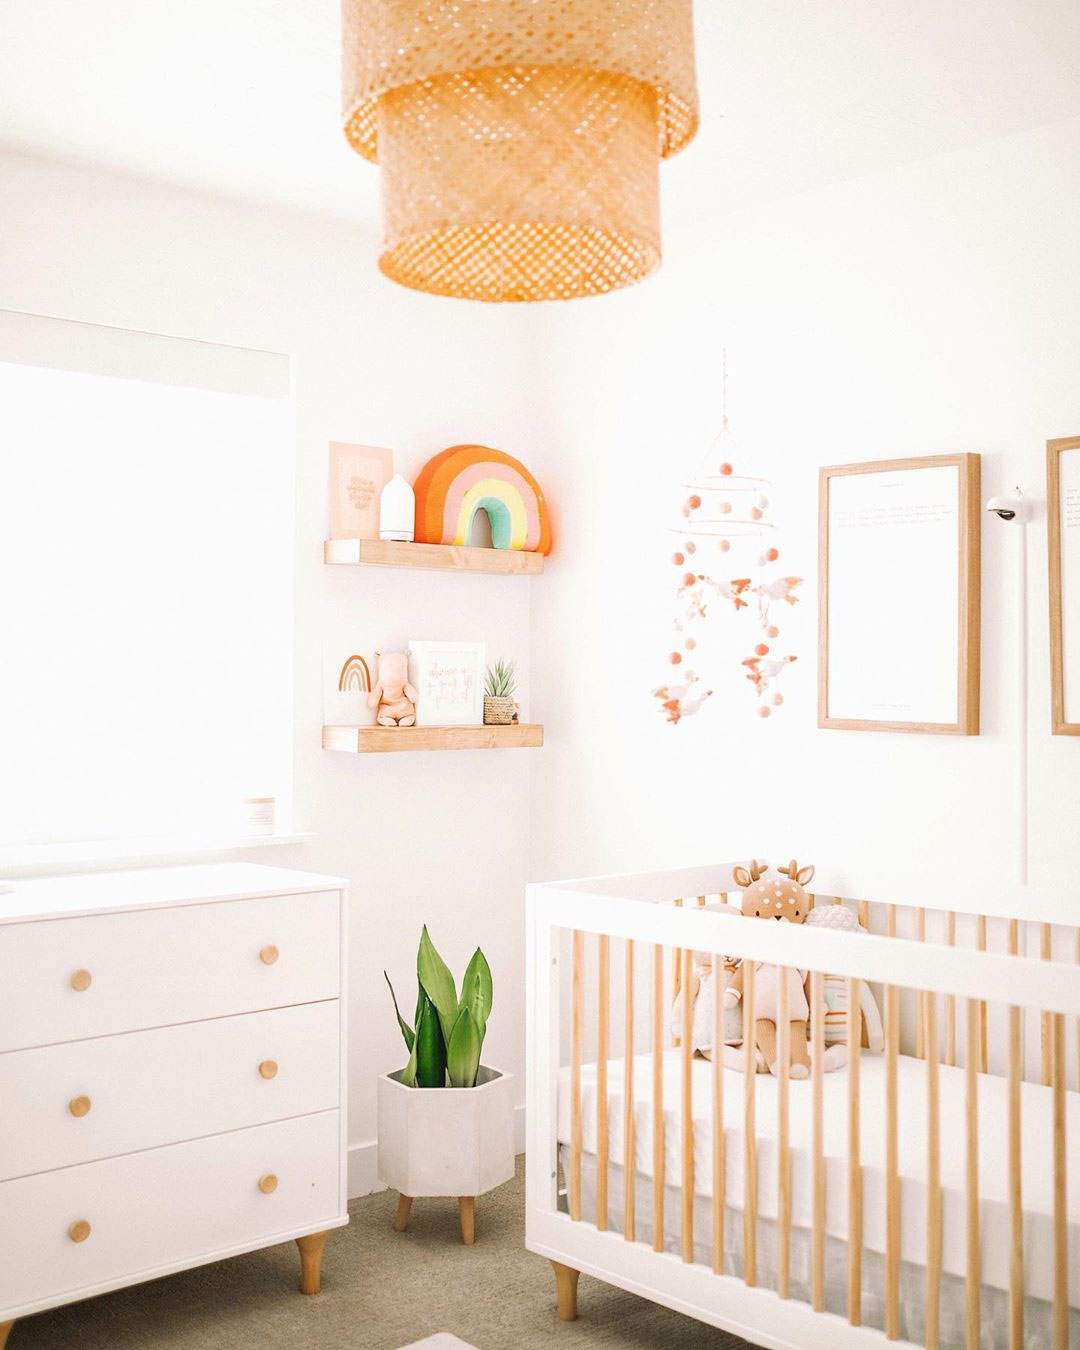 +12 Neutral Modern Nursery Ideas for your Baby Room - Partymazing